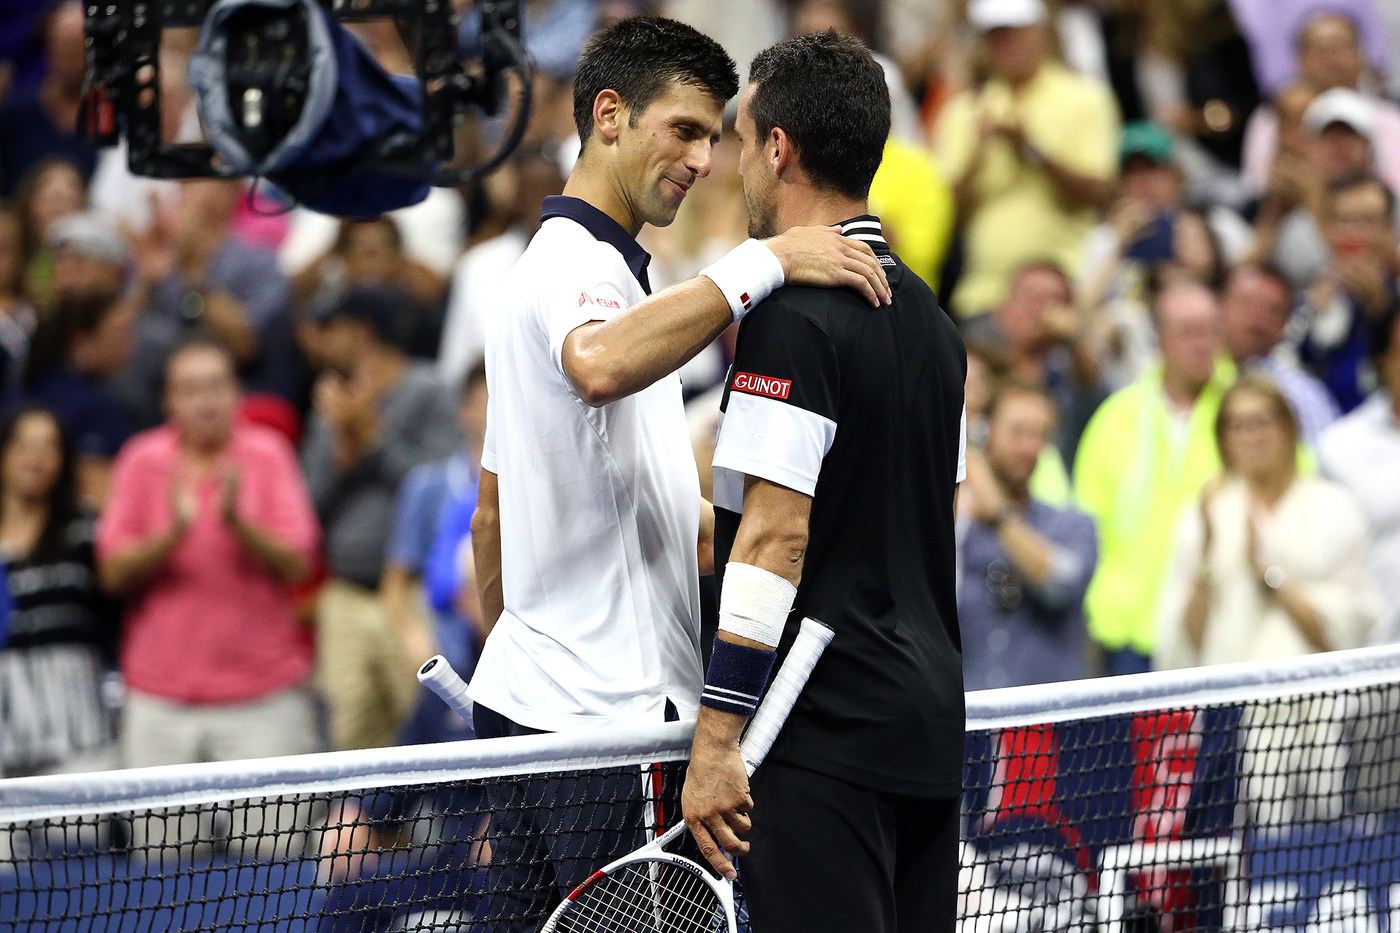 Novak Djokovic Vs Roberto Bautista Agut 26 03 2019 Tennis Picks